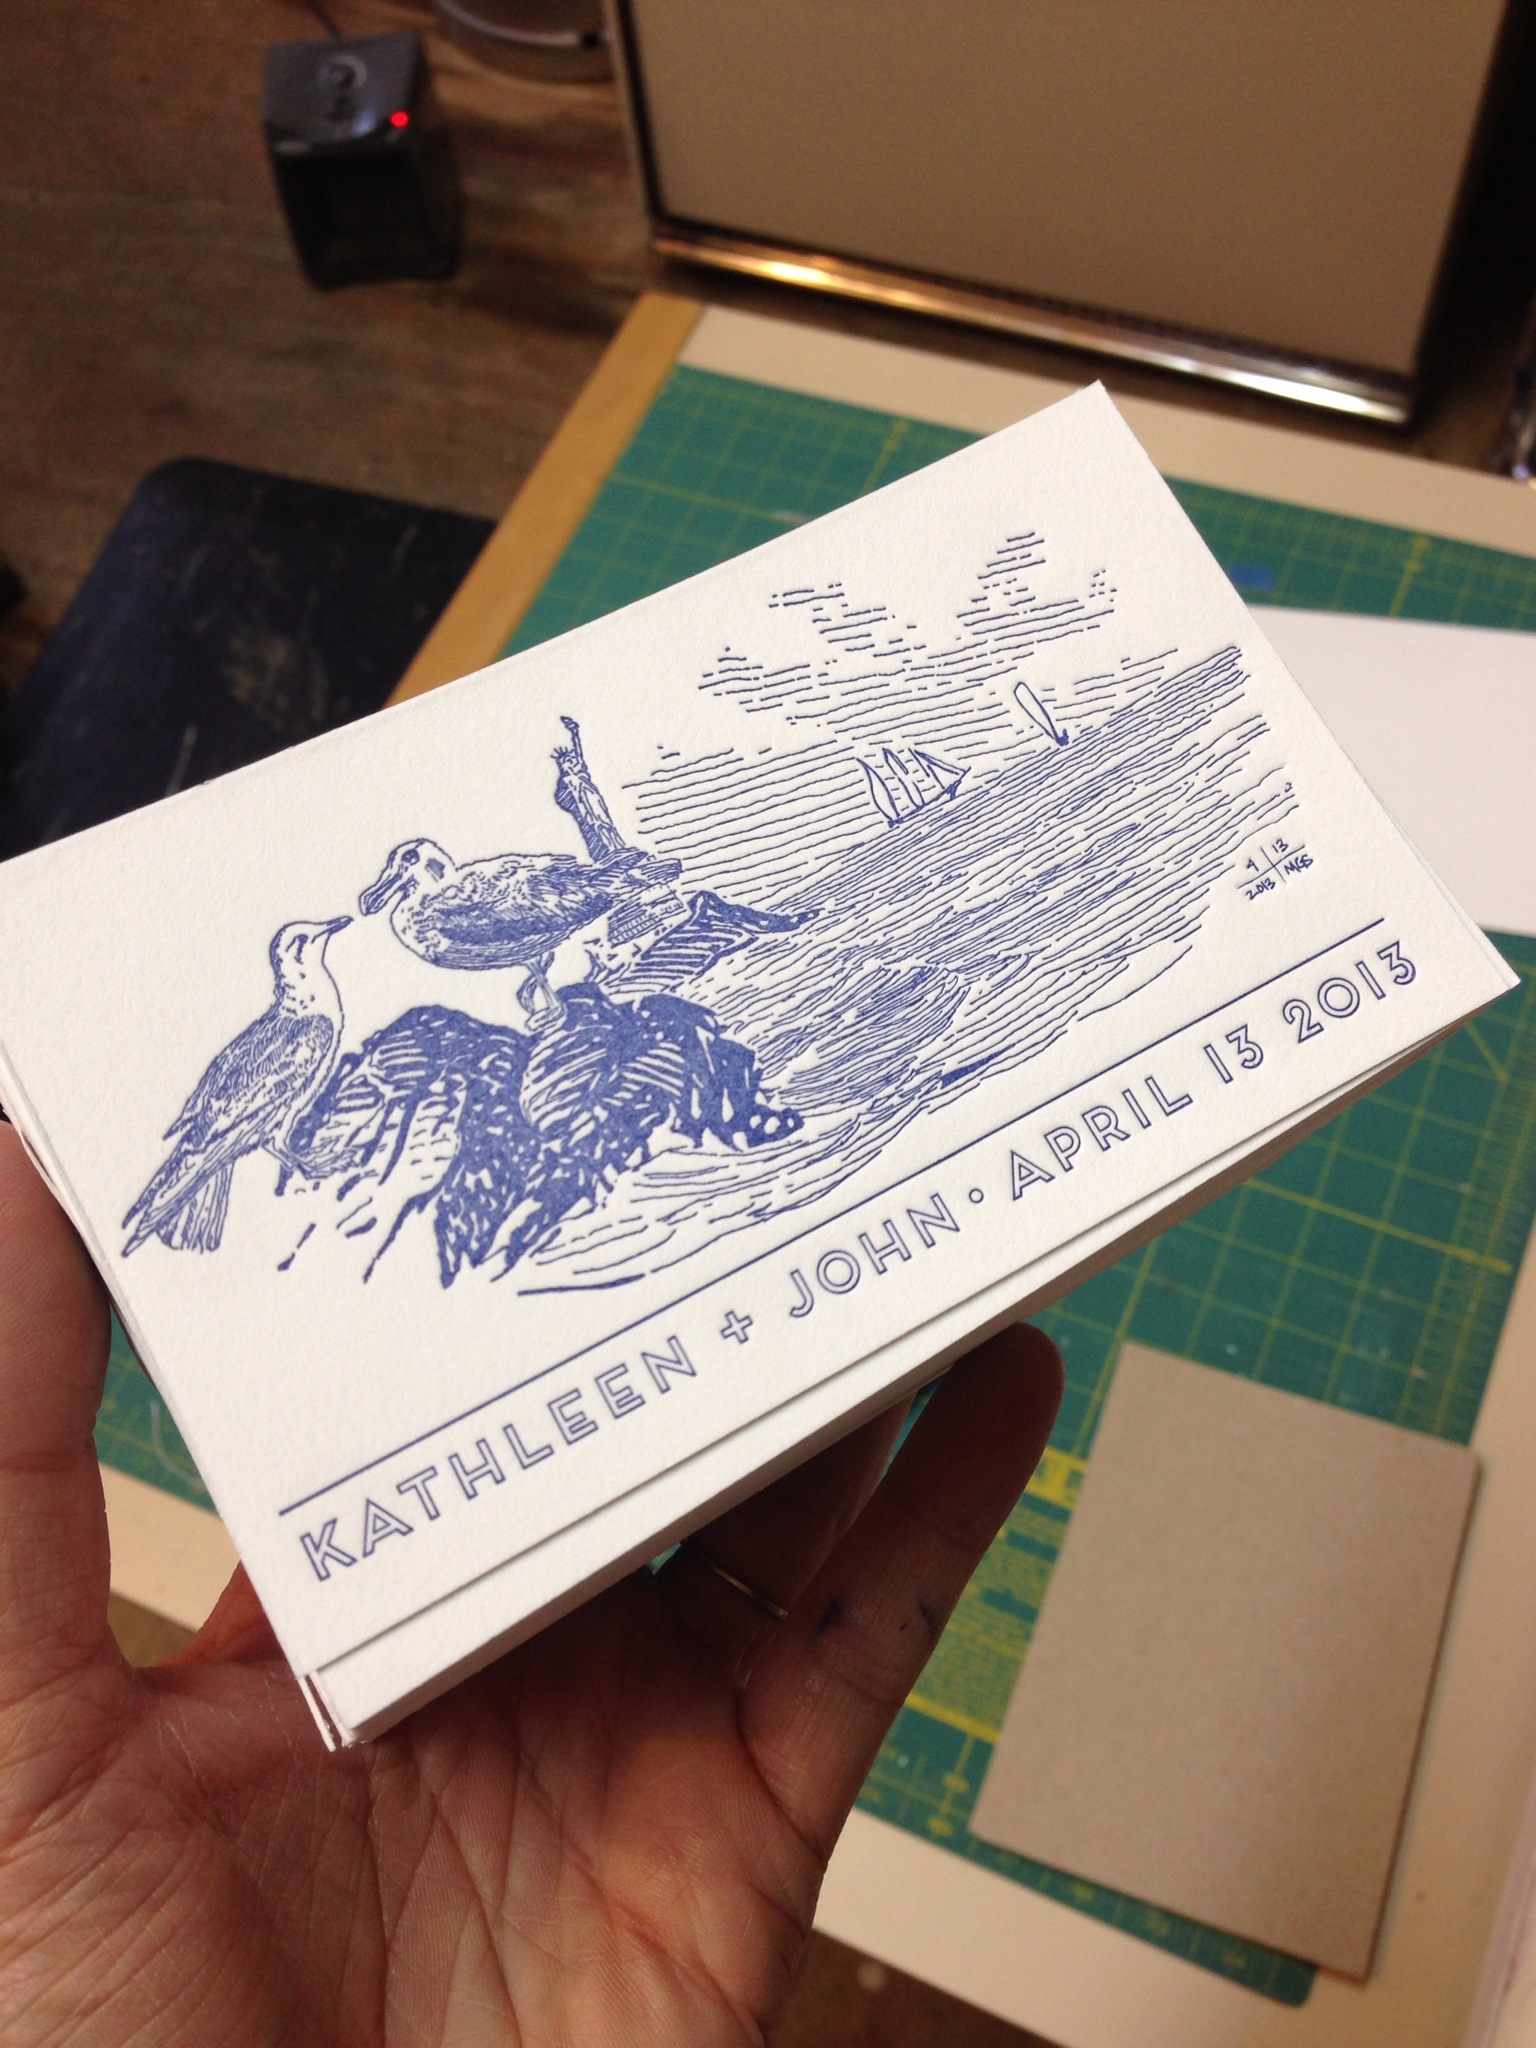 3x5 Cards featuring the entire drawing by Matt, to be included in welcome bags for guests